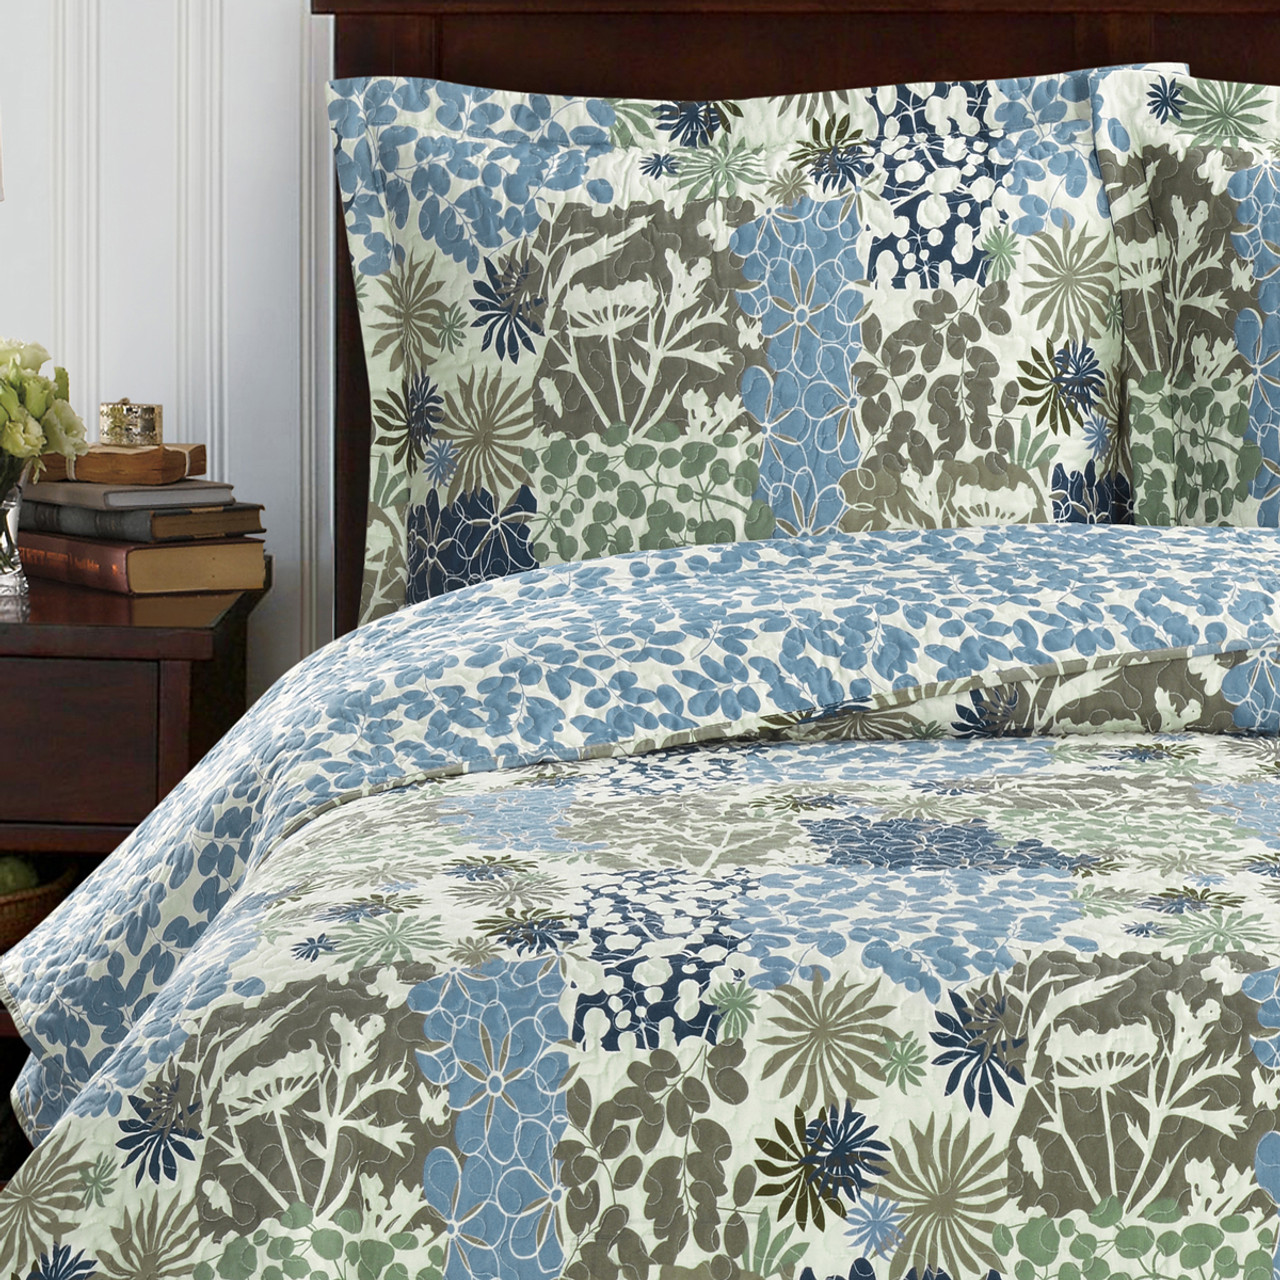 p damaskquiltgreen quilt damask green